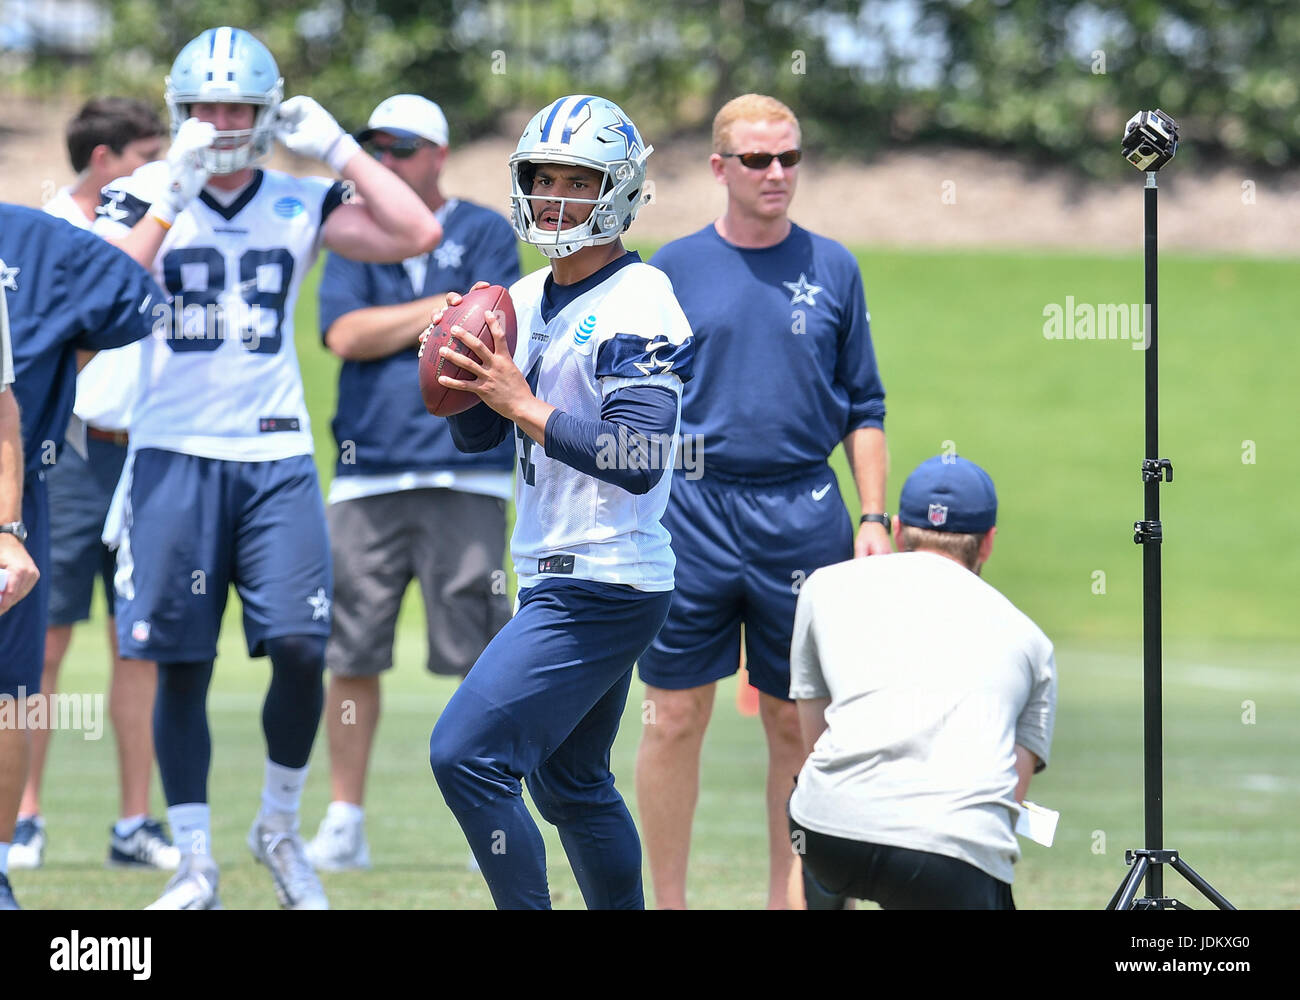 June 14th, 2017: .Dallas Cowboys quarterback Dak Prescott (4).during an NFL minicamp at The Star in Frisco, TX.Manny Stock Photo